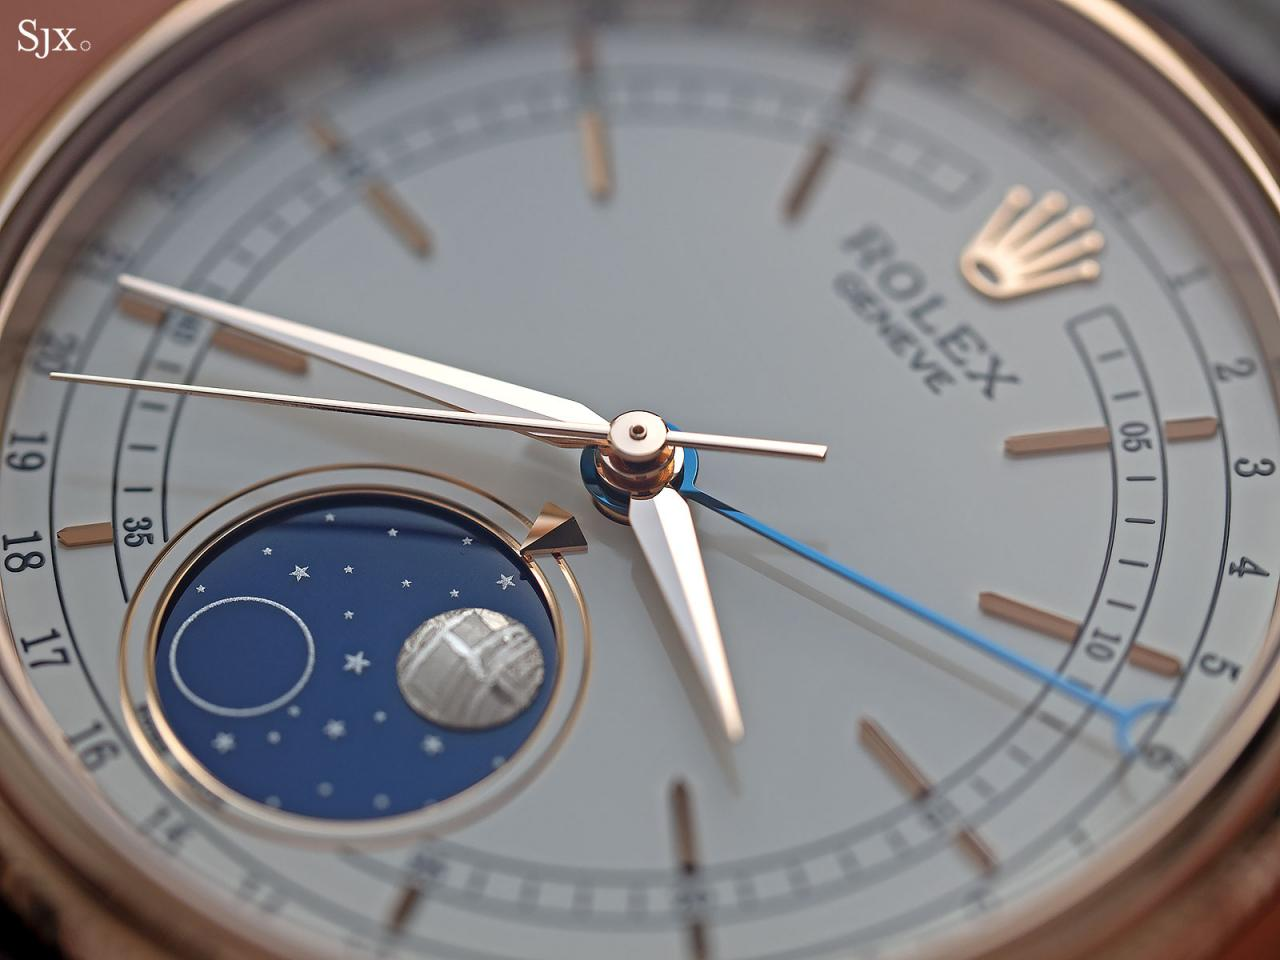 Rolex Cellini Moonphase 50535 review 14